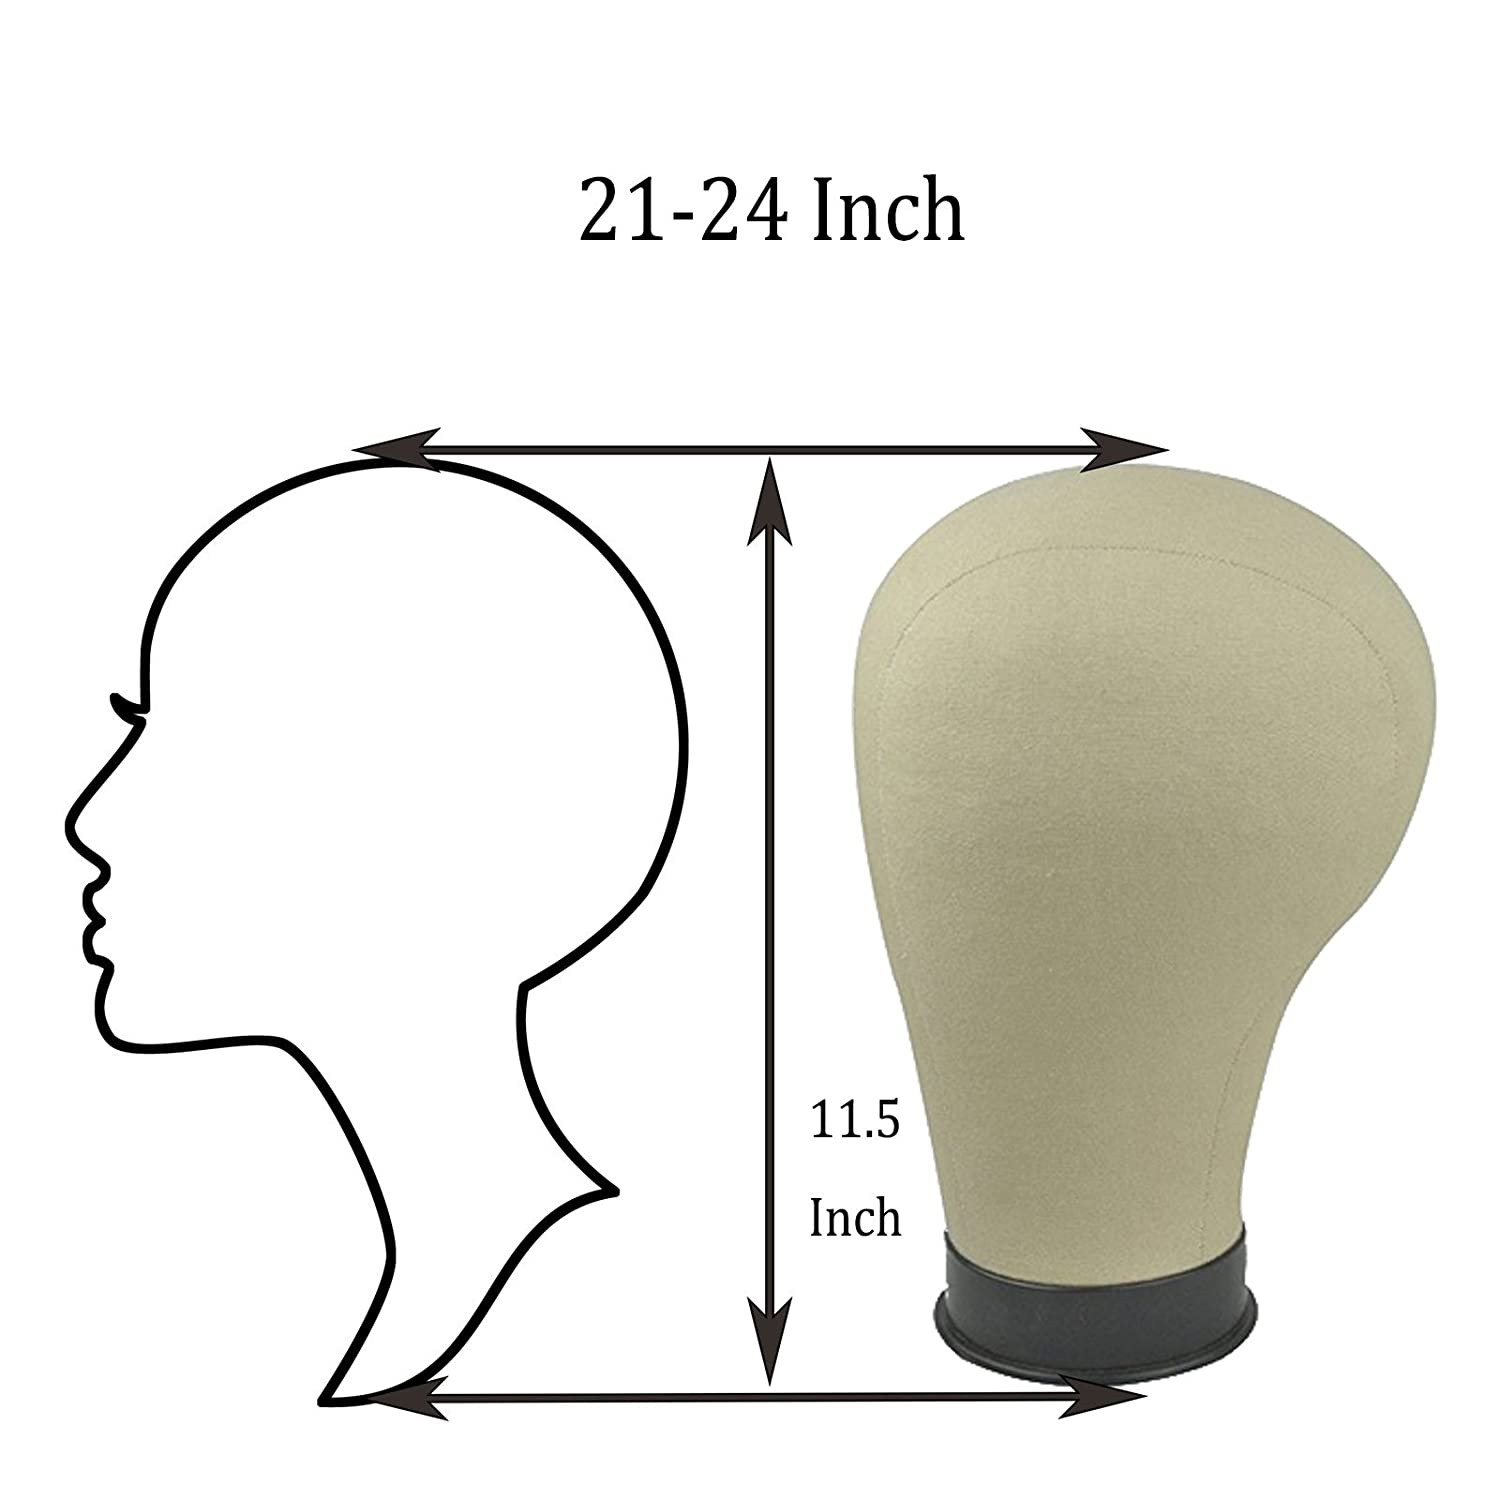 21-24 Black Base Cork Canvas Block Head For Wig Making Drying Styling Coloring 23 Inch Beyond Your Thoughts